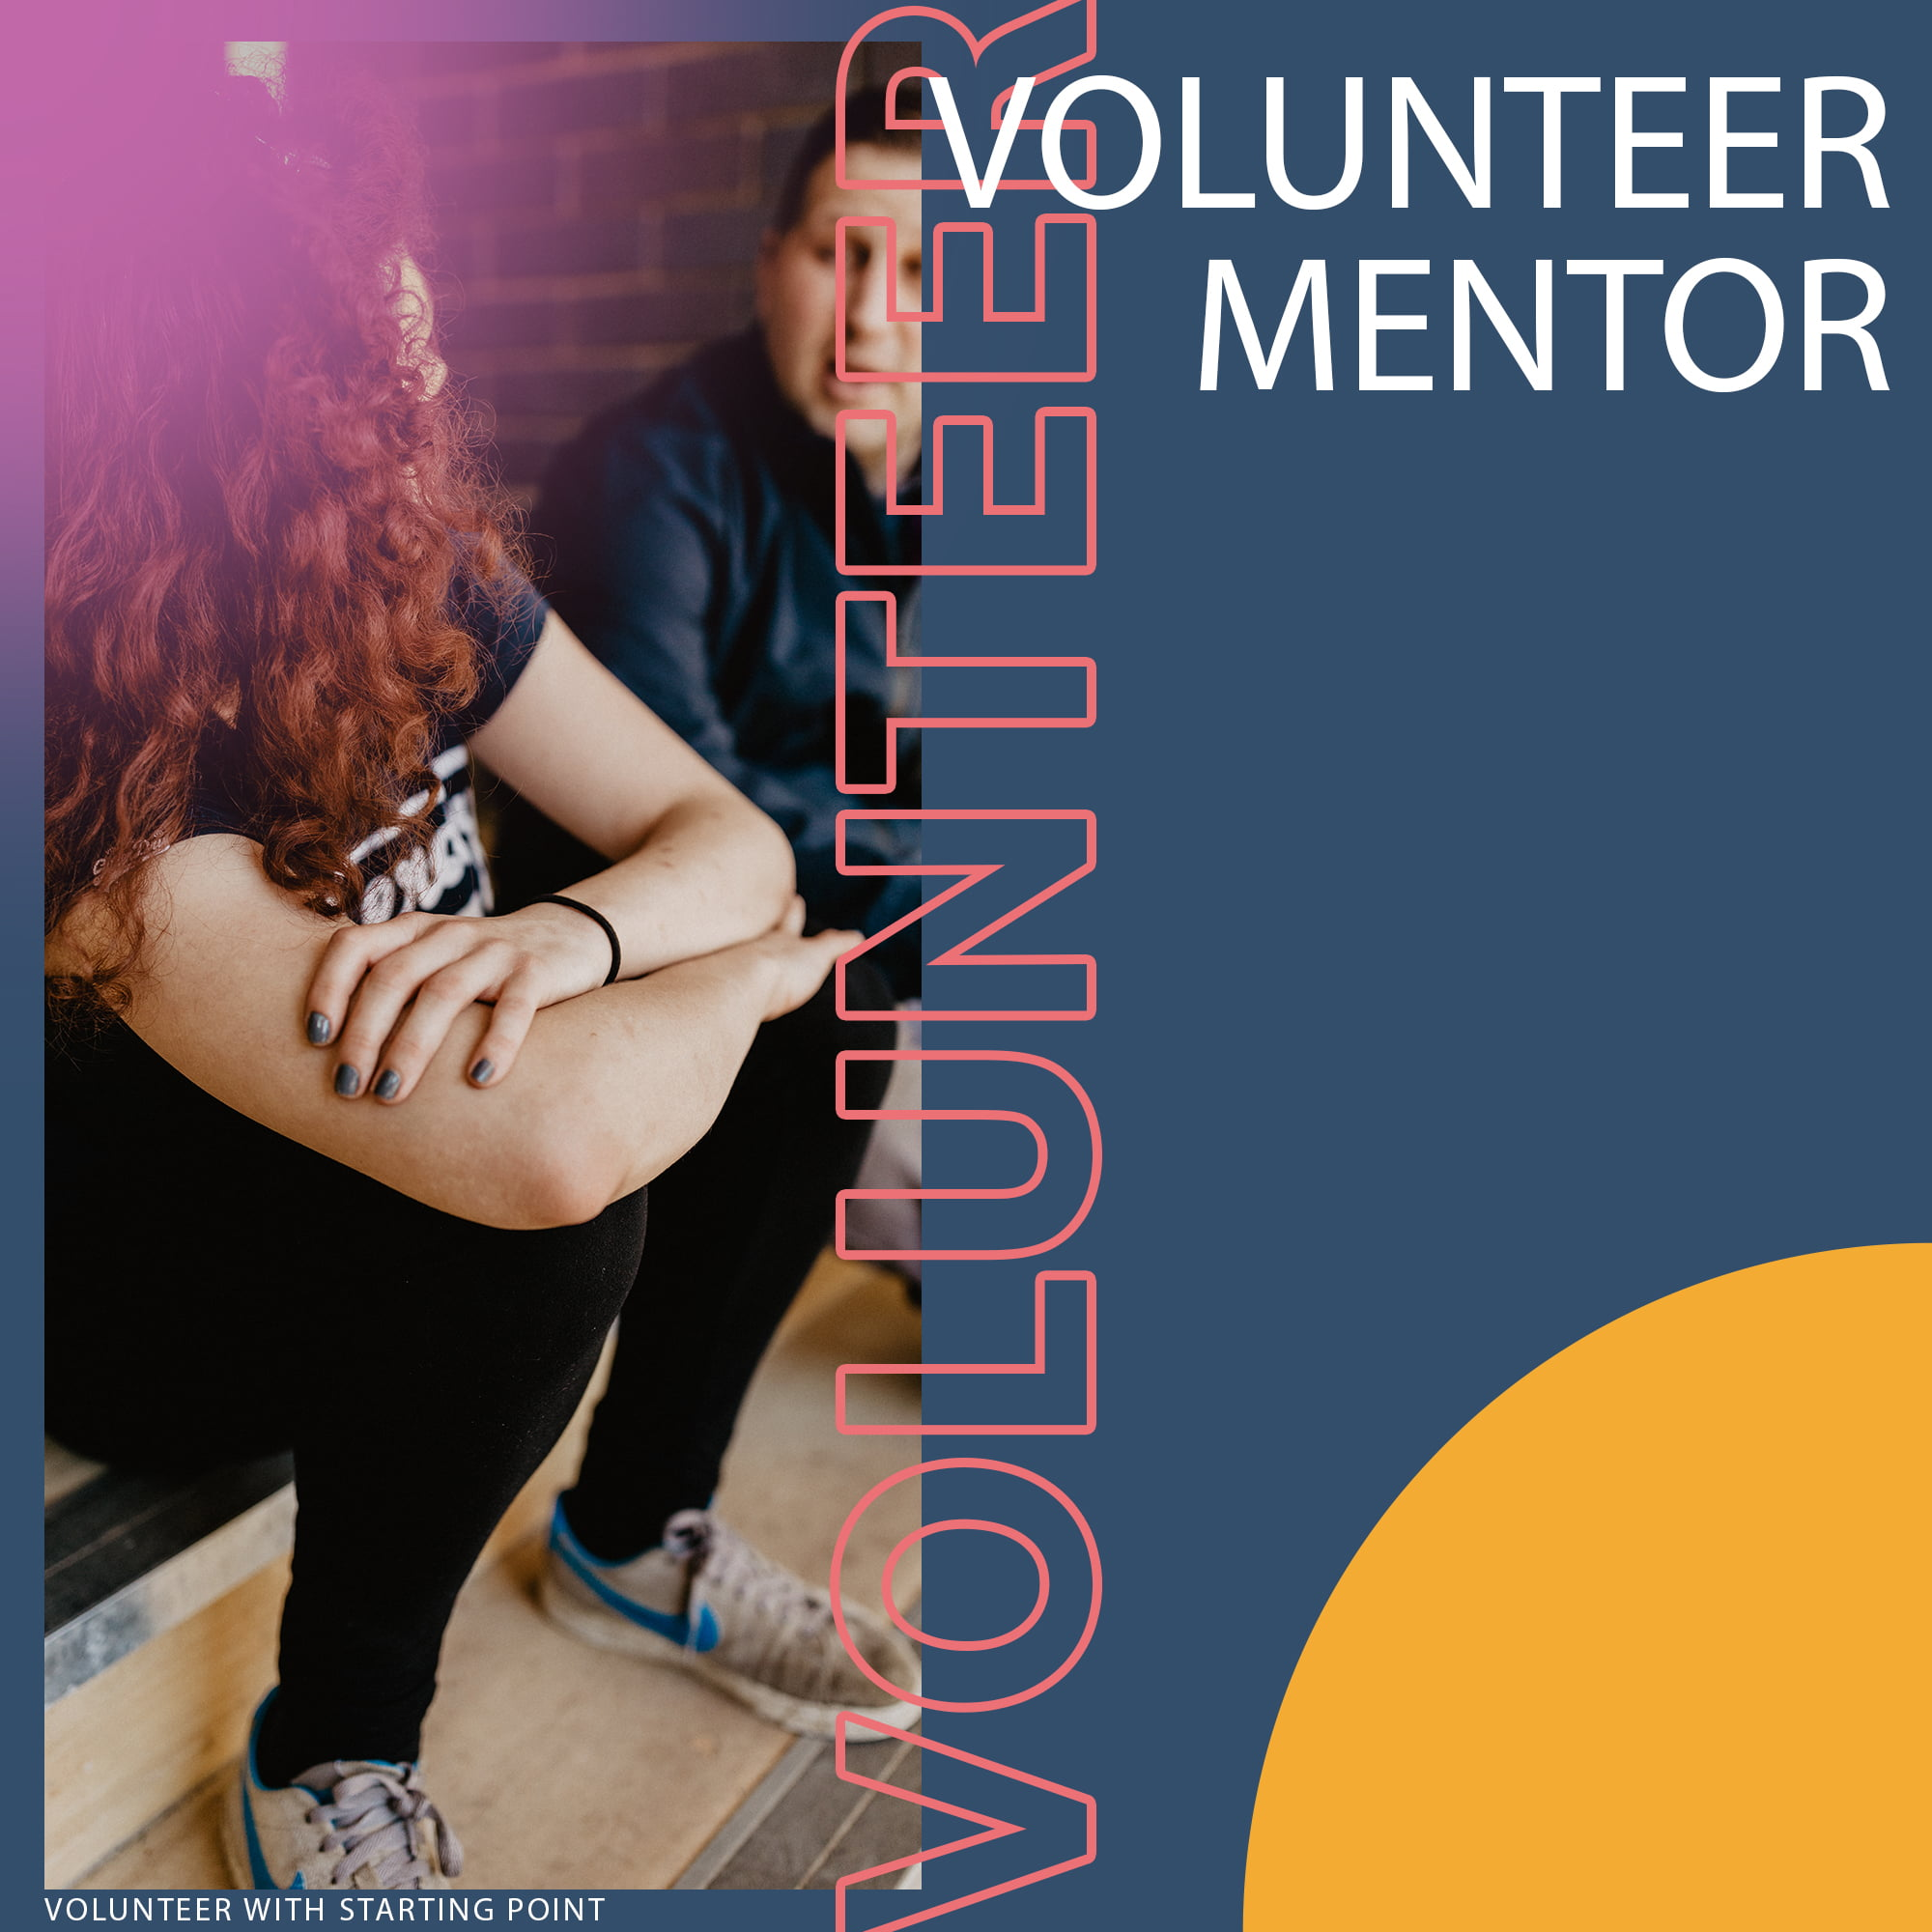 Volunteer as a Mentor